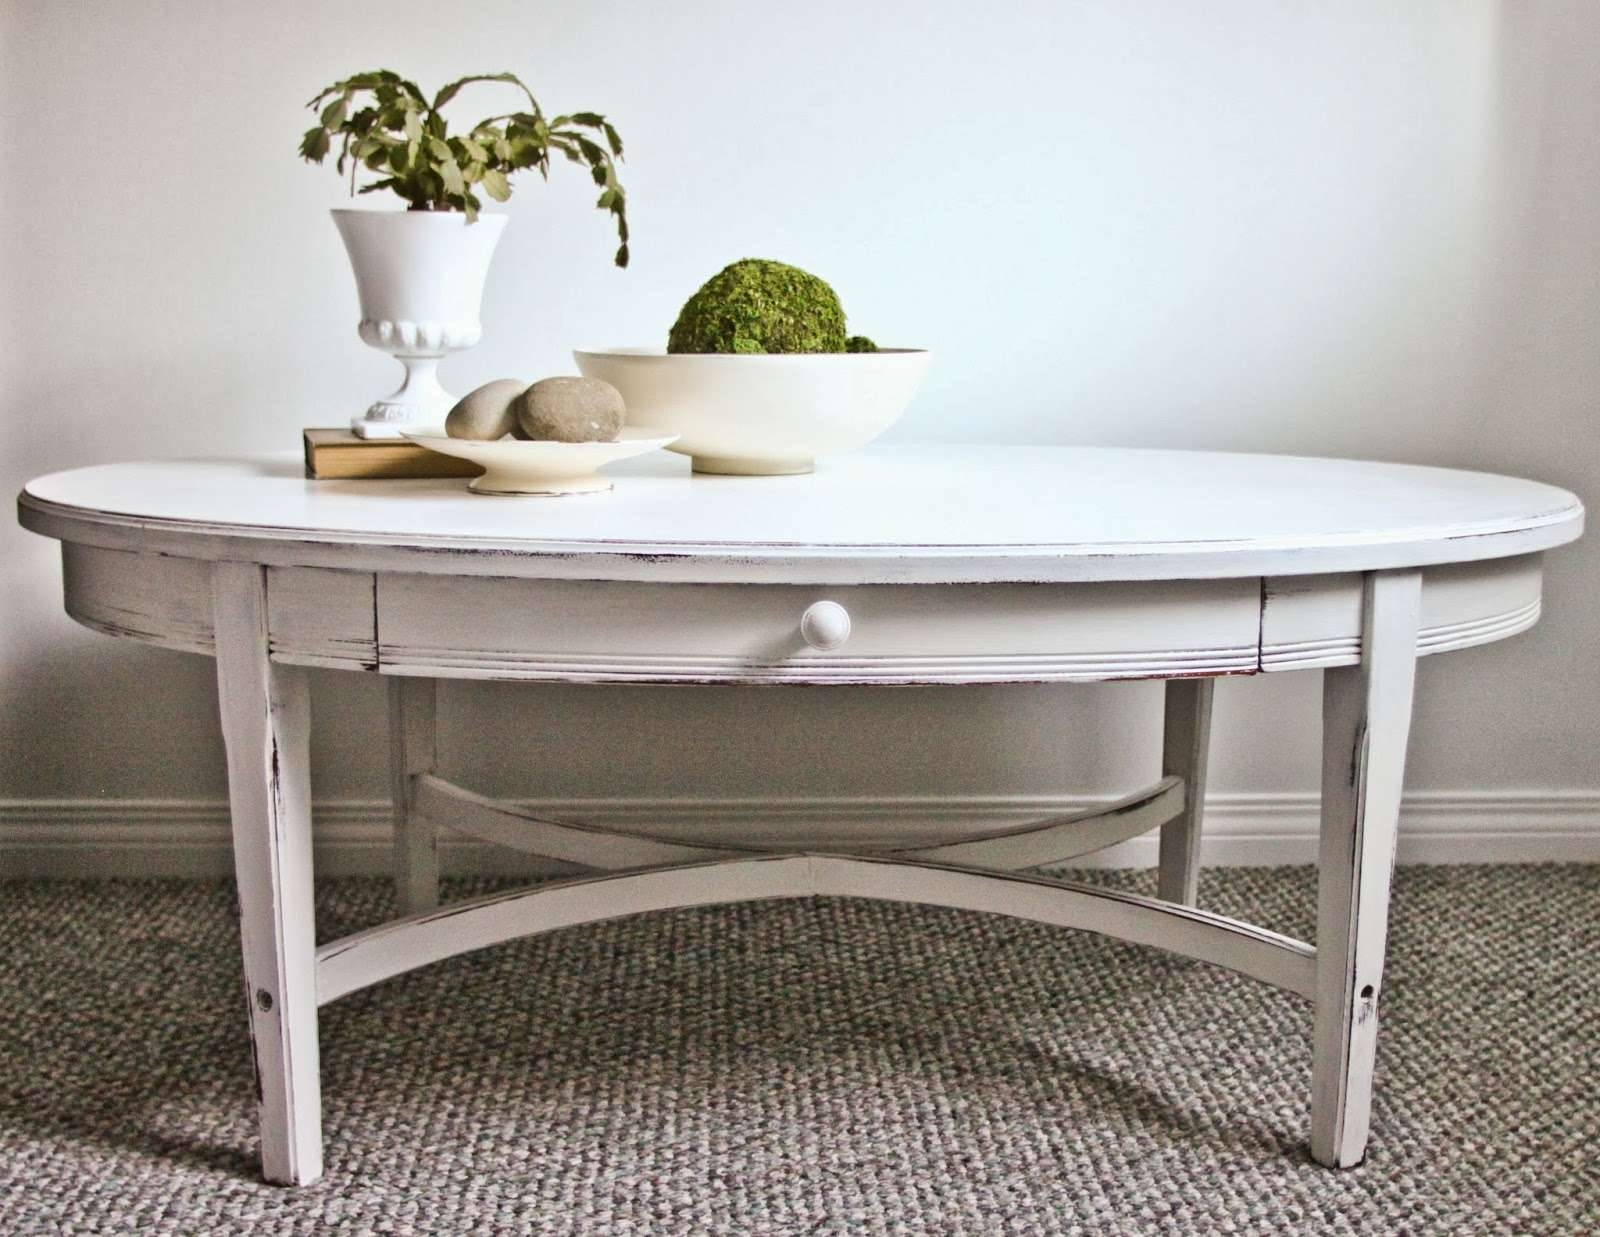 Sweet Tree Furniture: Oval Coffee Table With Drawer For Popular Oval White Coffee Tables (View 16 of 20)